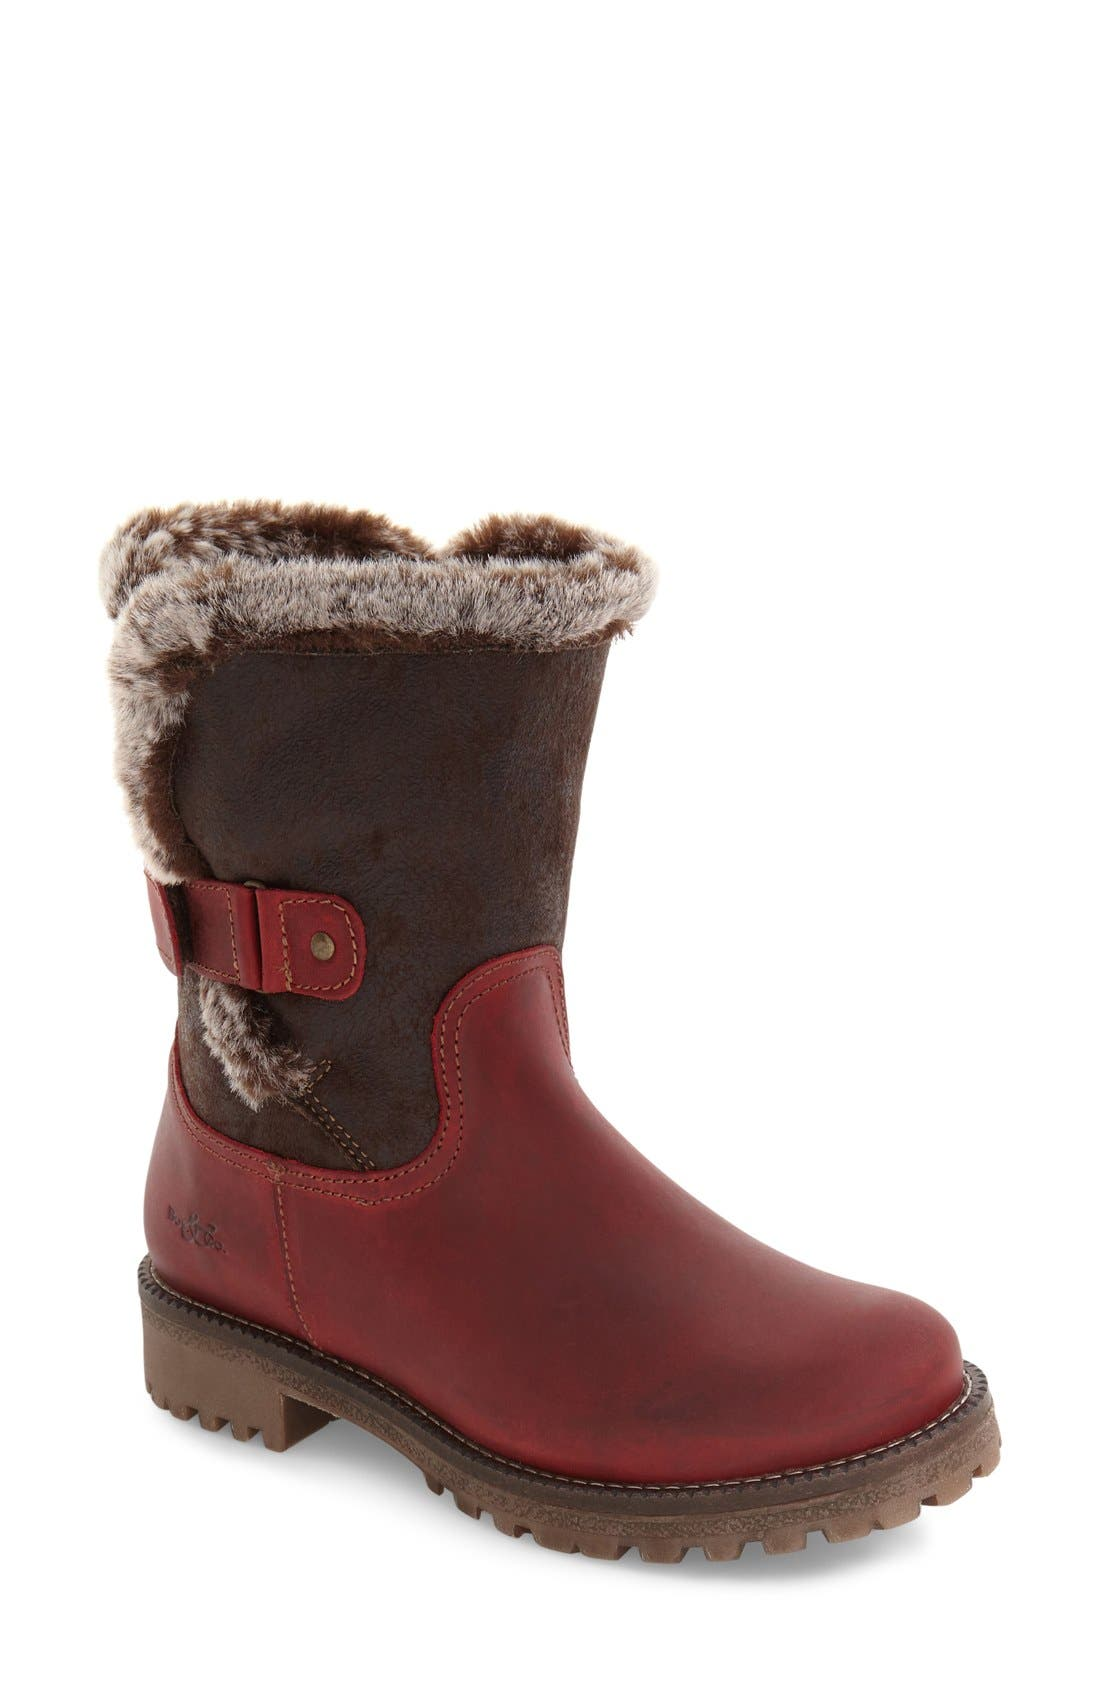 Main Image - Bos. & Co. Candy Waterproof Boot with Faux Fur Trim (Women)